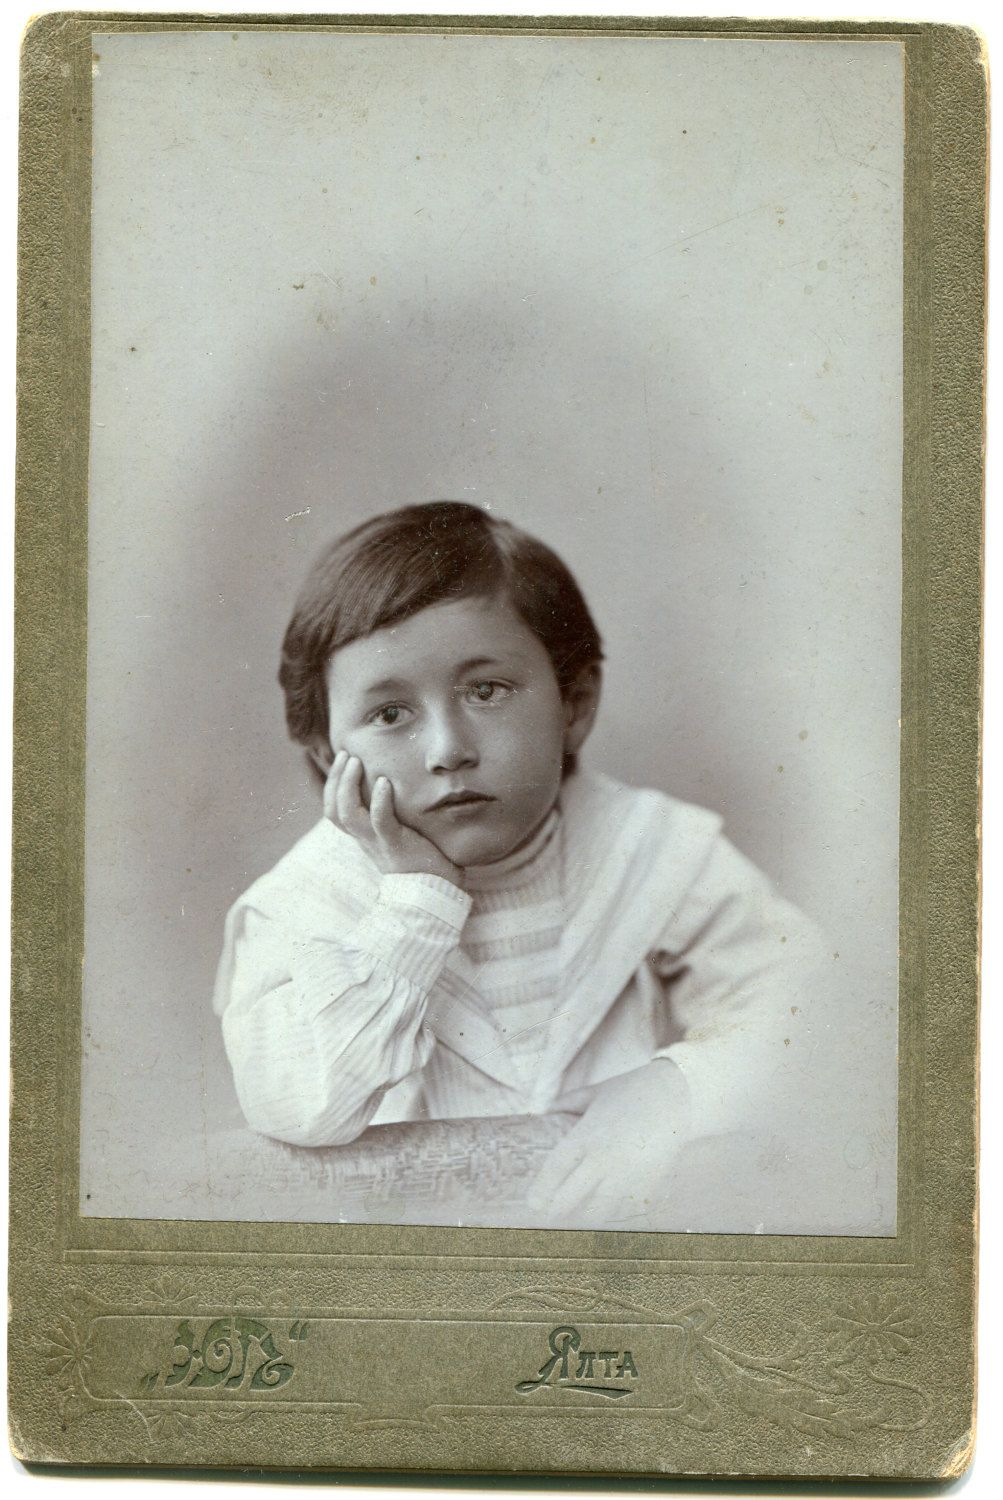 Russia: Extremely beautiful photo of young thoughtful boy in sailor suit child photograph Antique Cabinet Photo 1890s Cabinet Card by PhotoMemoriesLane on Etsy